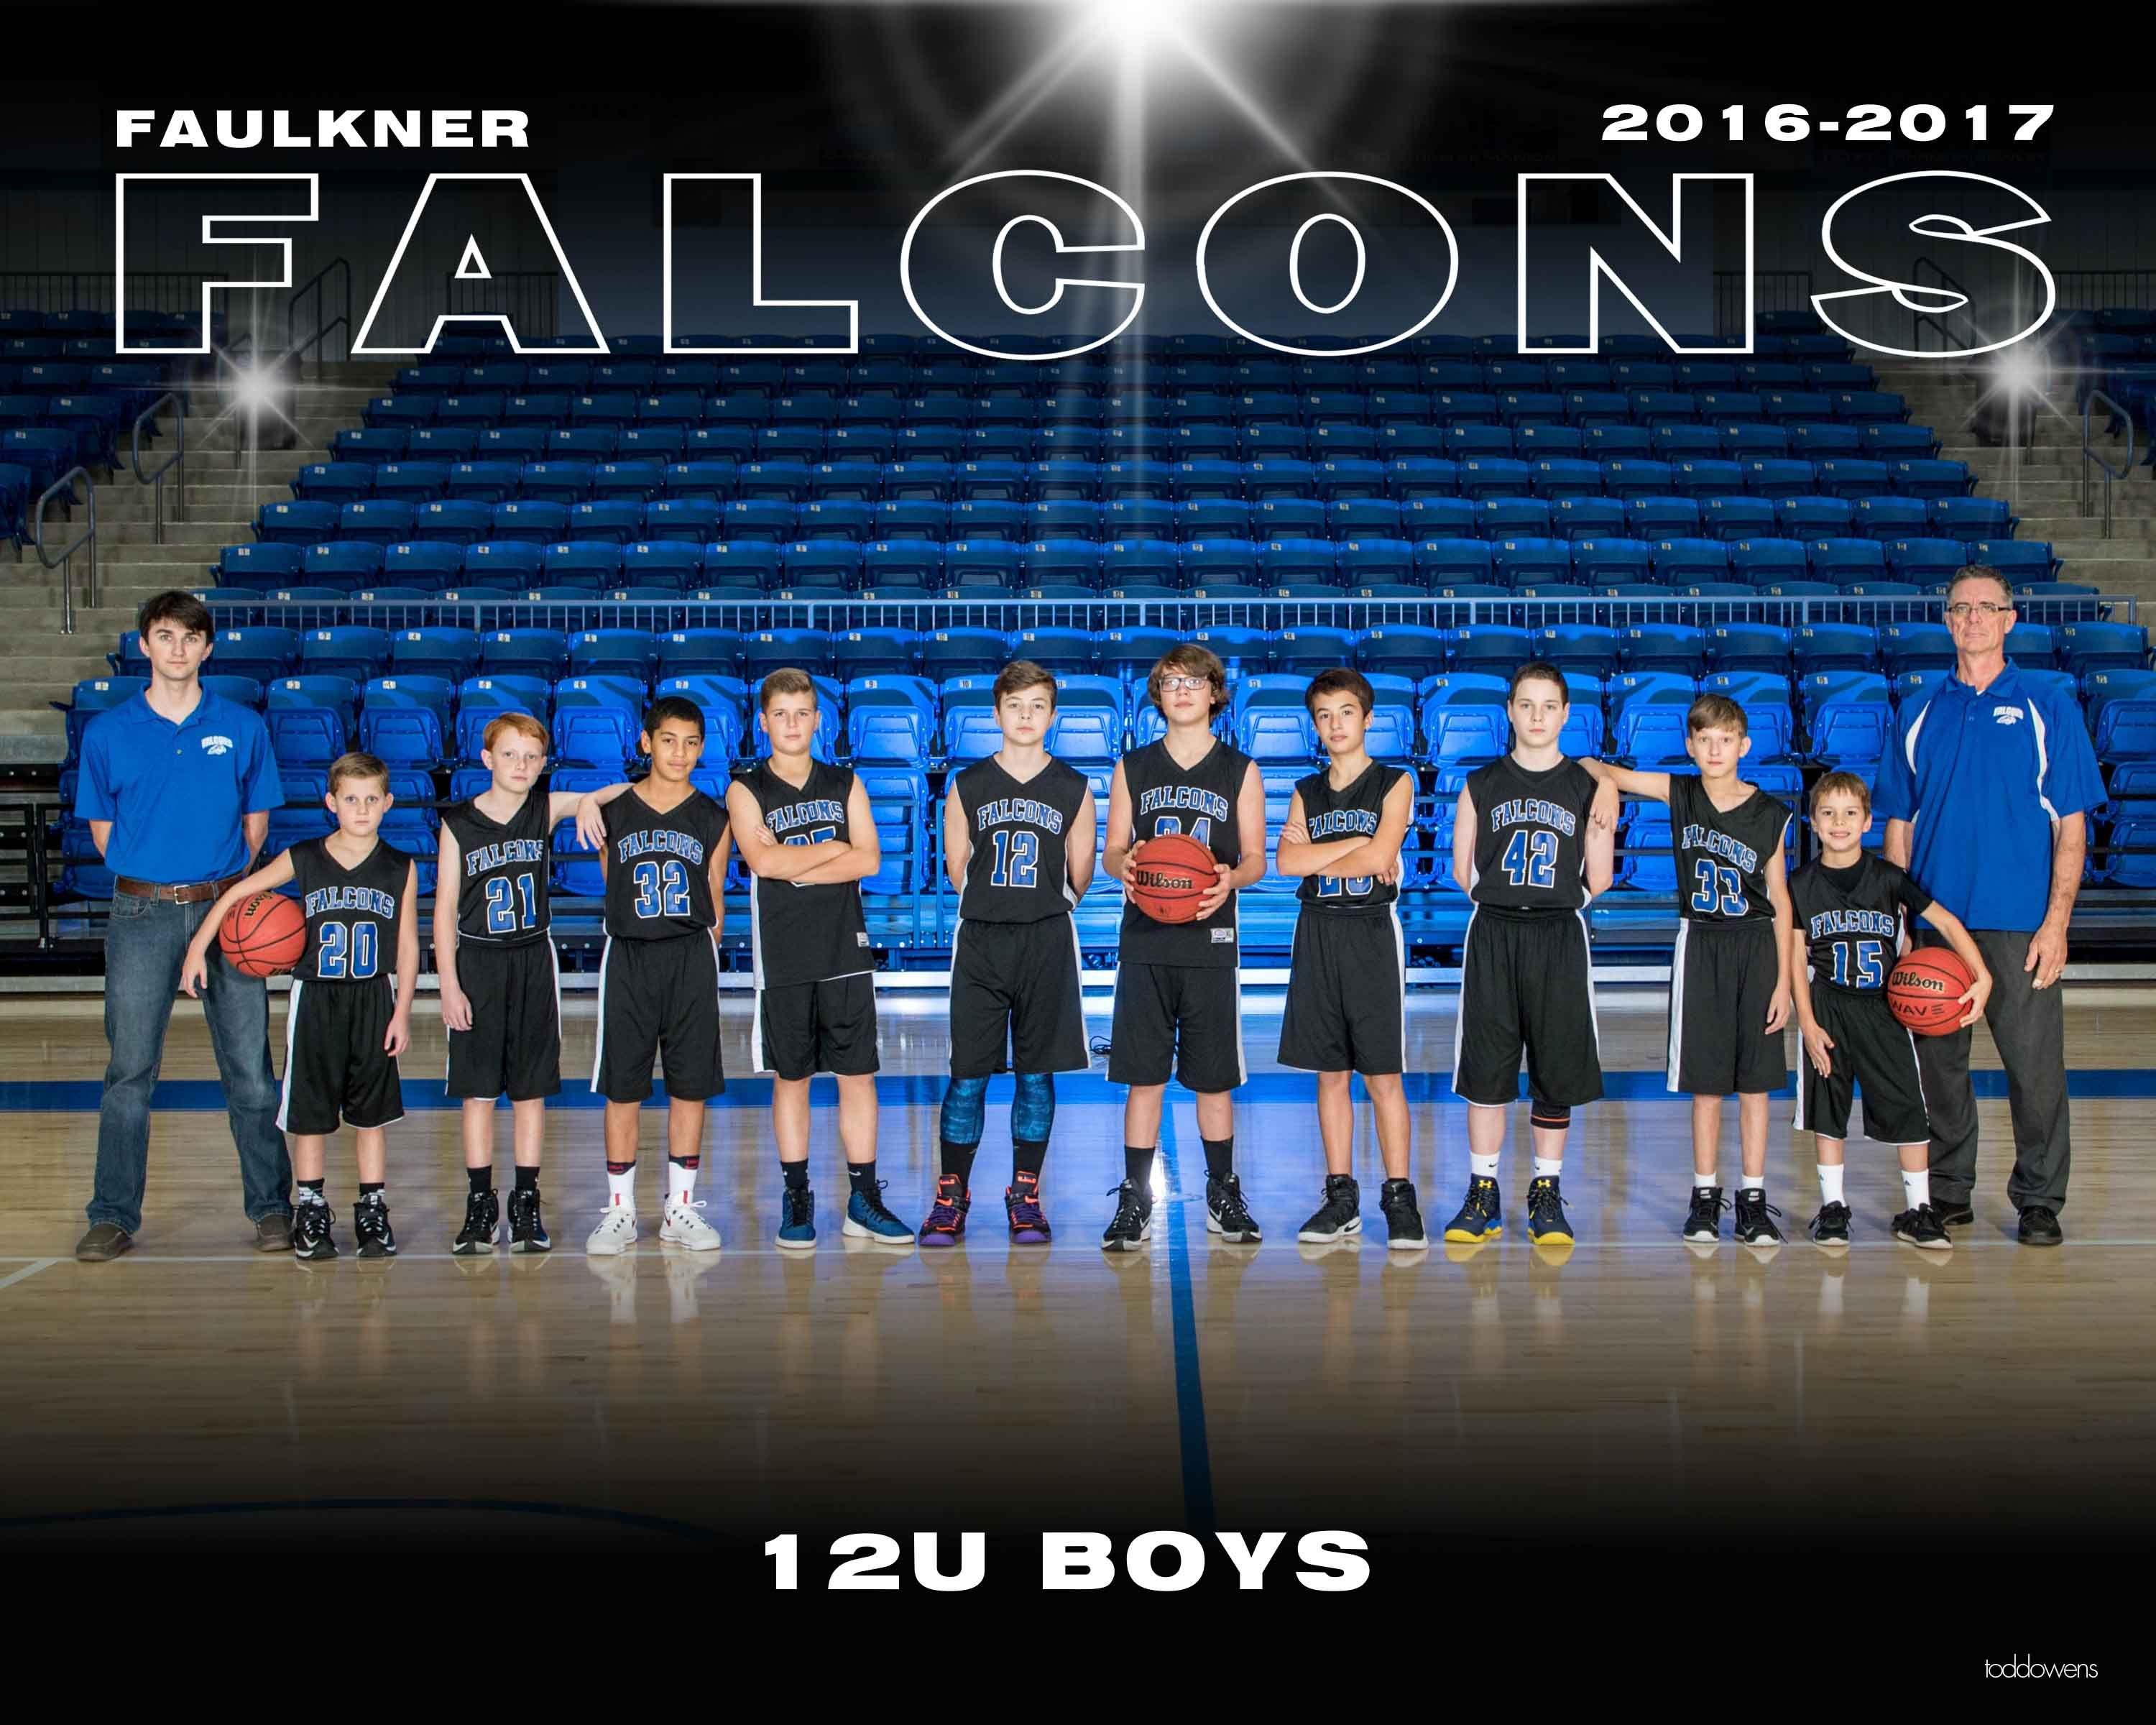 2016-2017 Falcon BB 12U BOYS